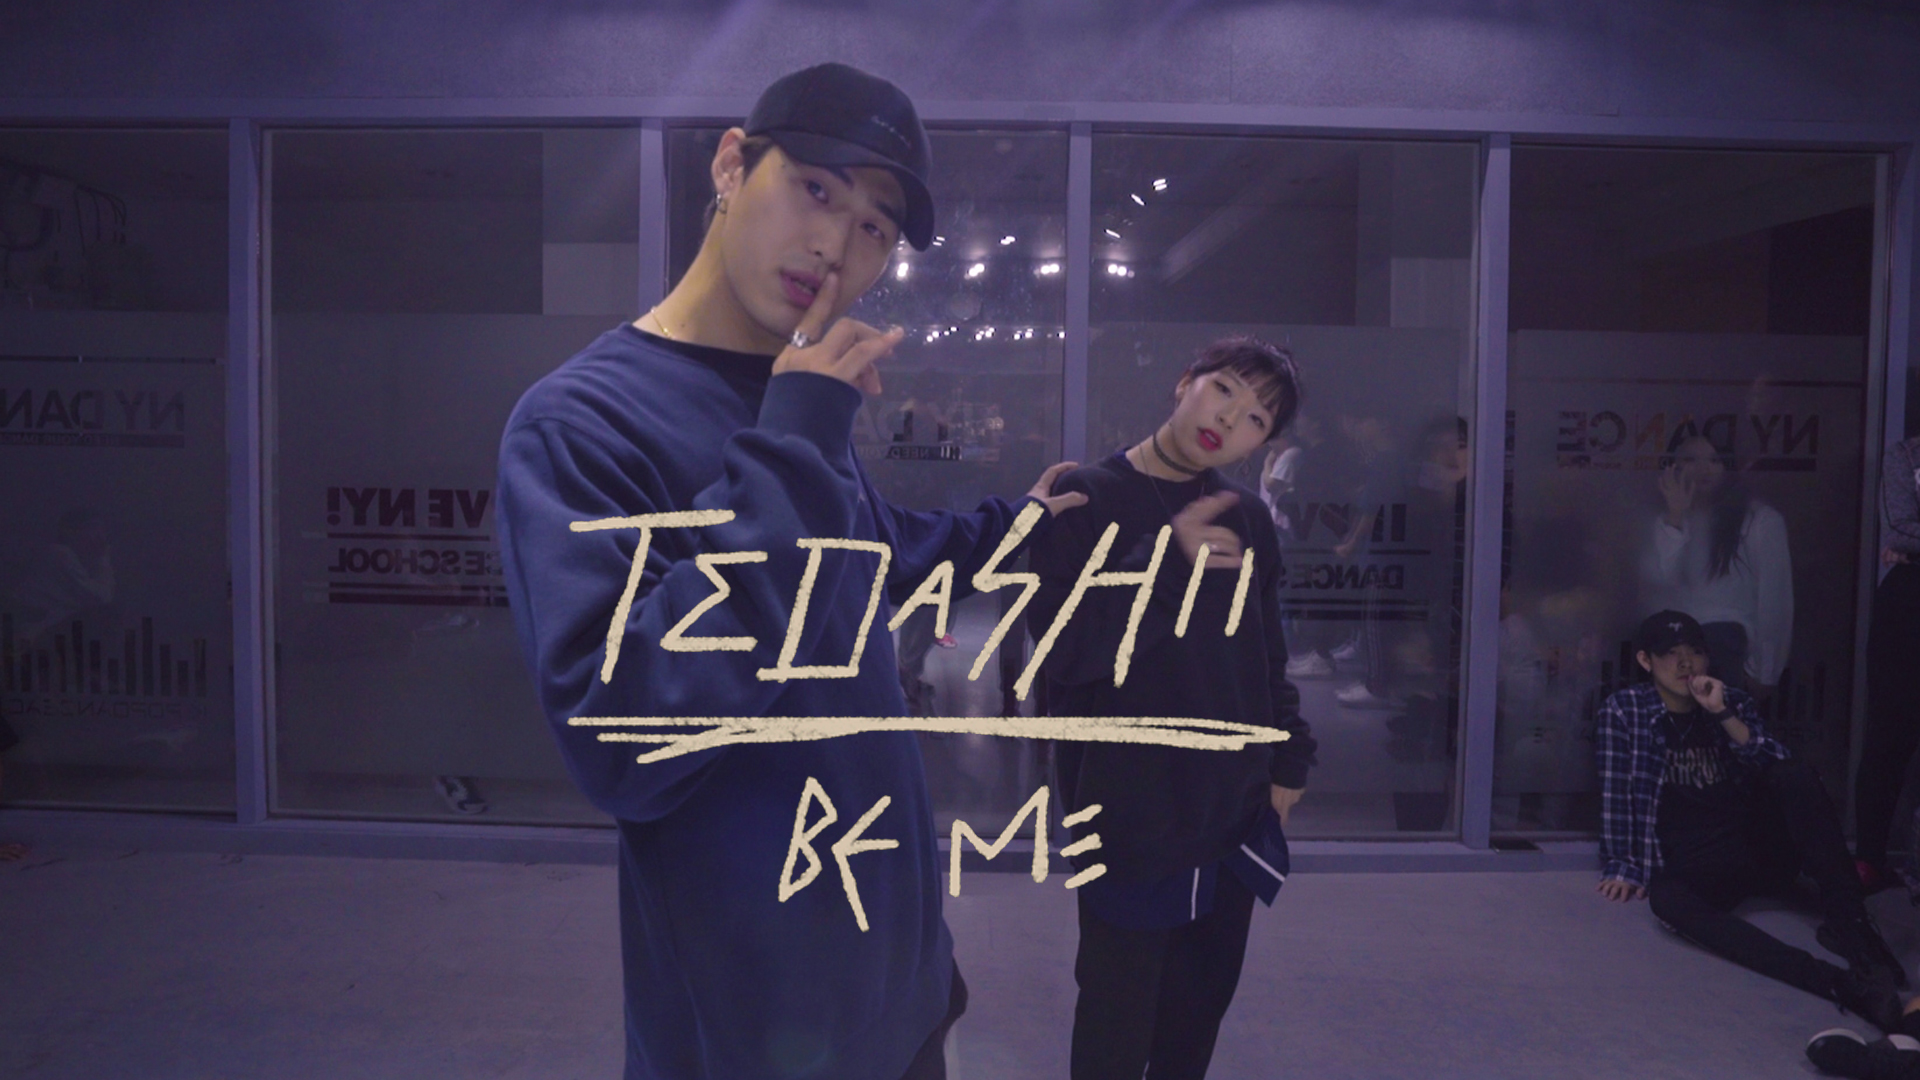 Tedashii – Be Me choreography by JayB